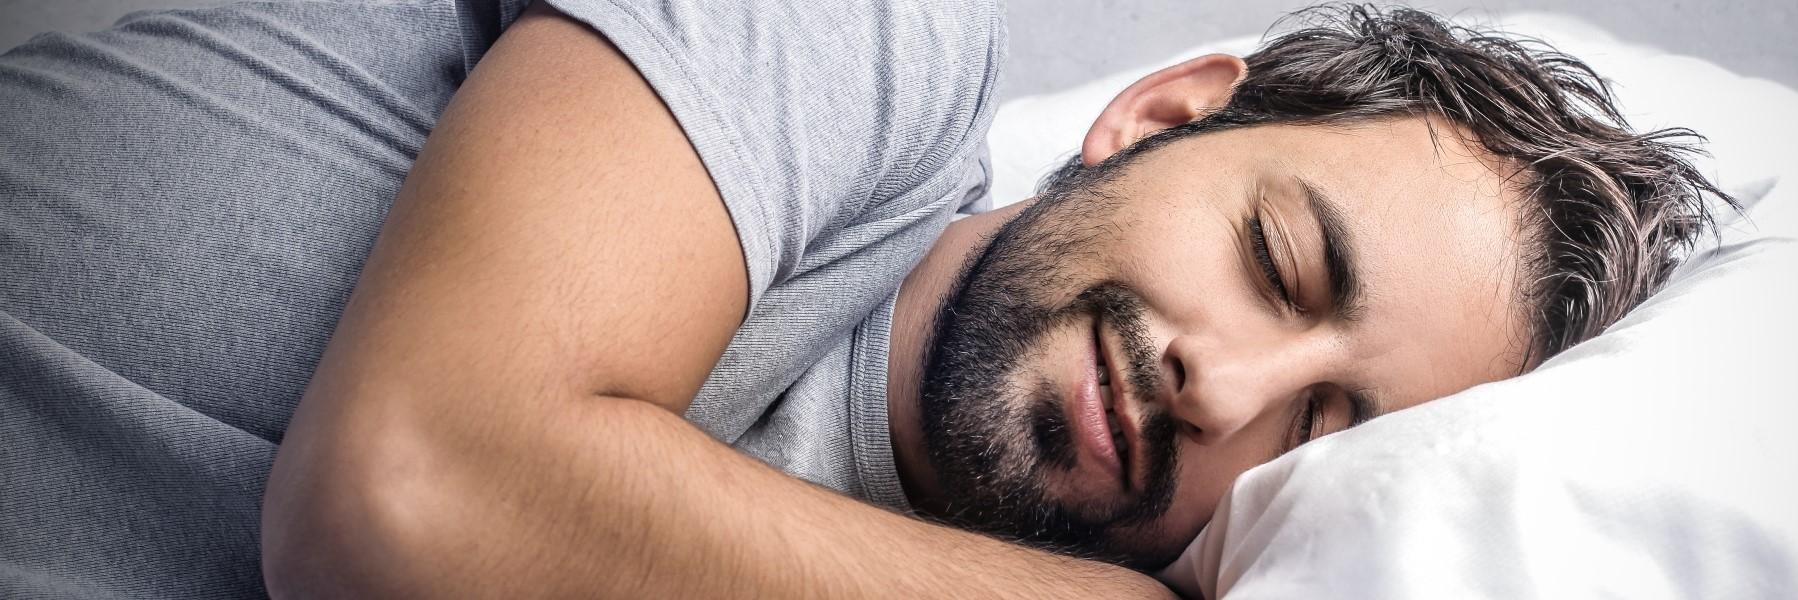 man sleeping soundly with a night guard